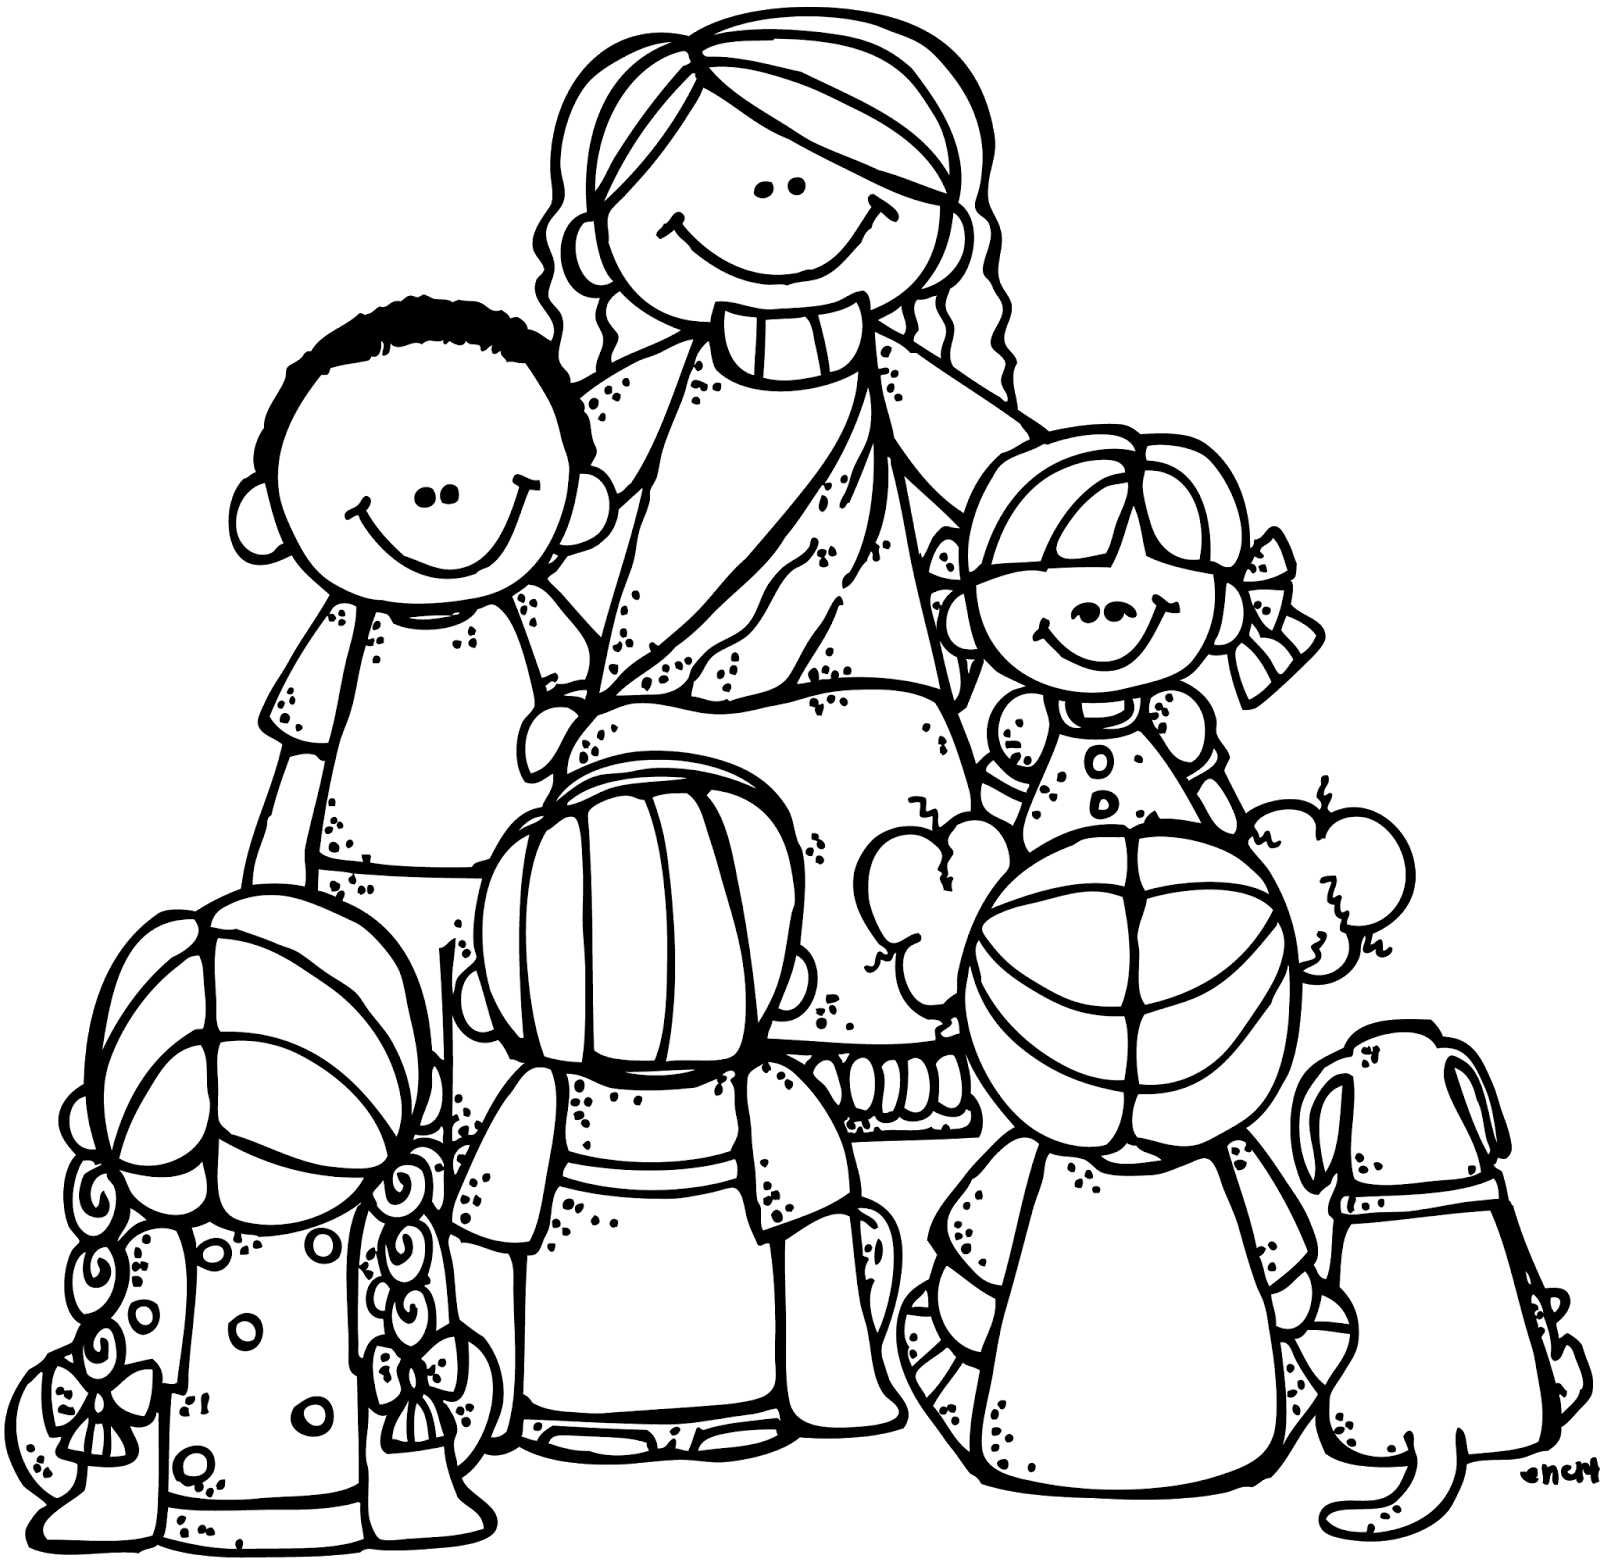 Black and white clipart of kids with jesus at the cross image royalty free download Melonheadz jesus preaching clipart - ClipartFox image royalty free download